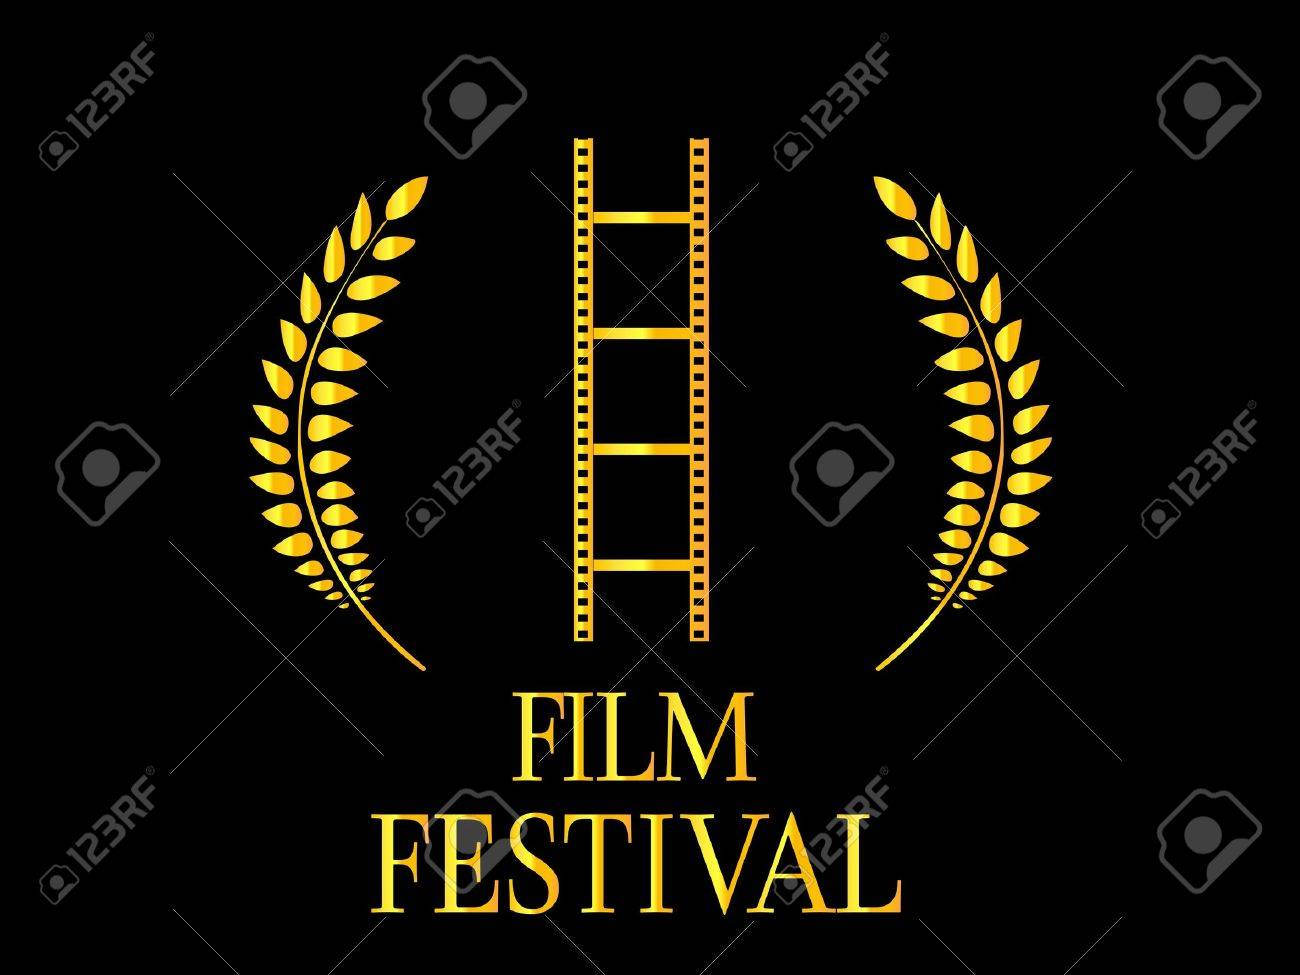 Film Festival Stock Vector - 15150782